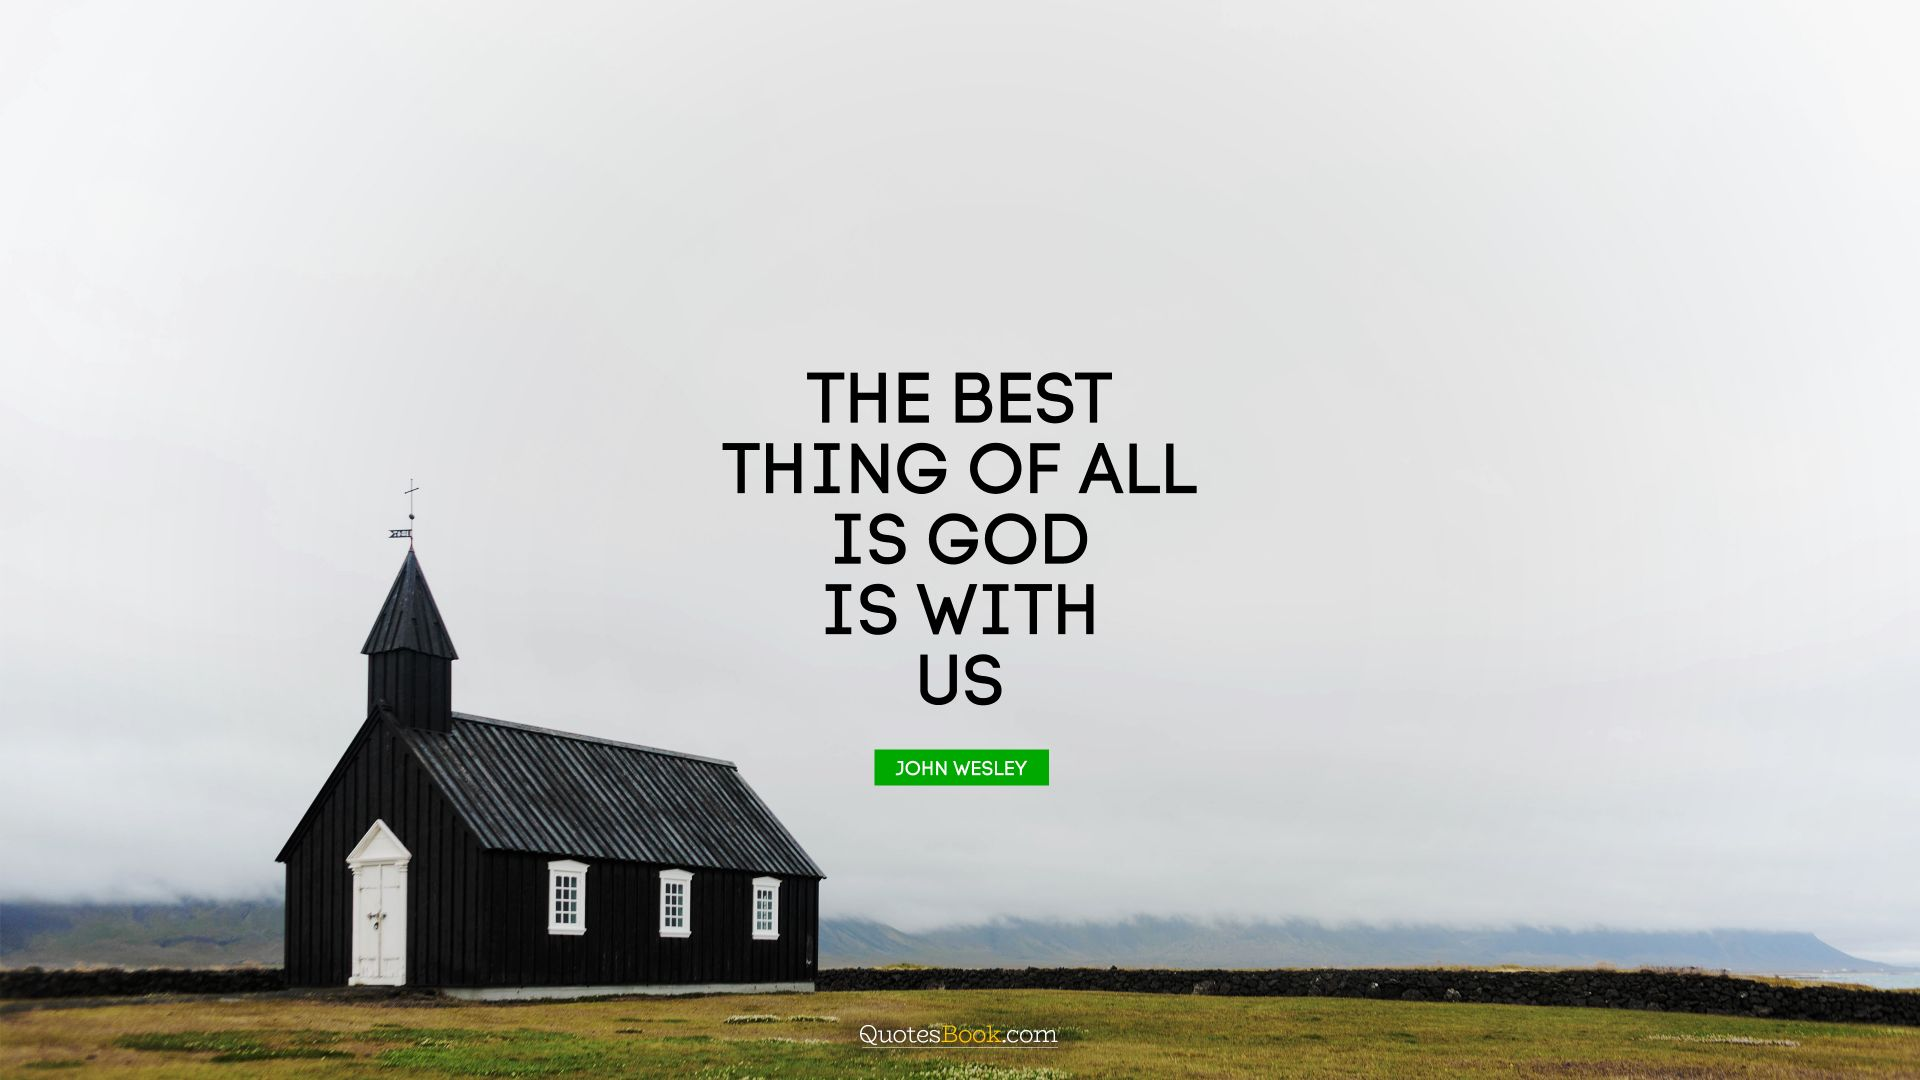 The best thing of all is God is with us. - Quote by John Wesley